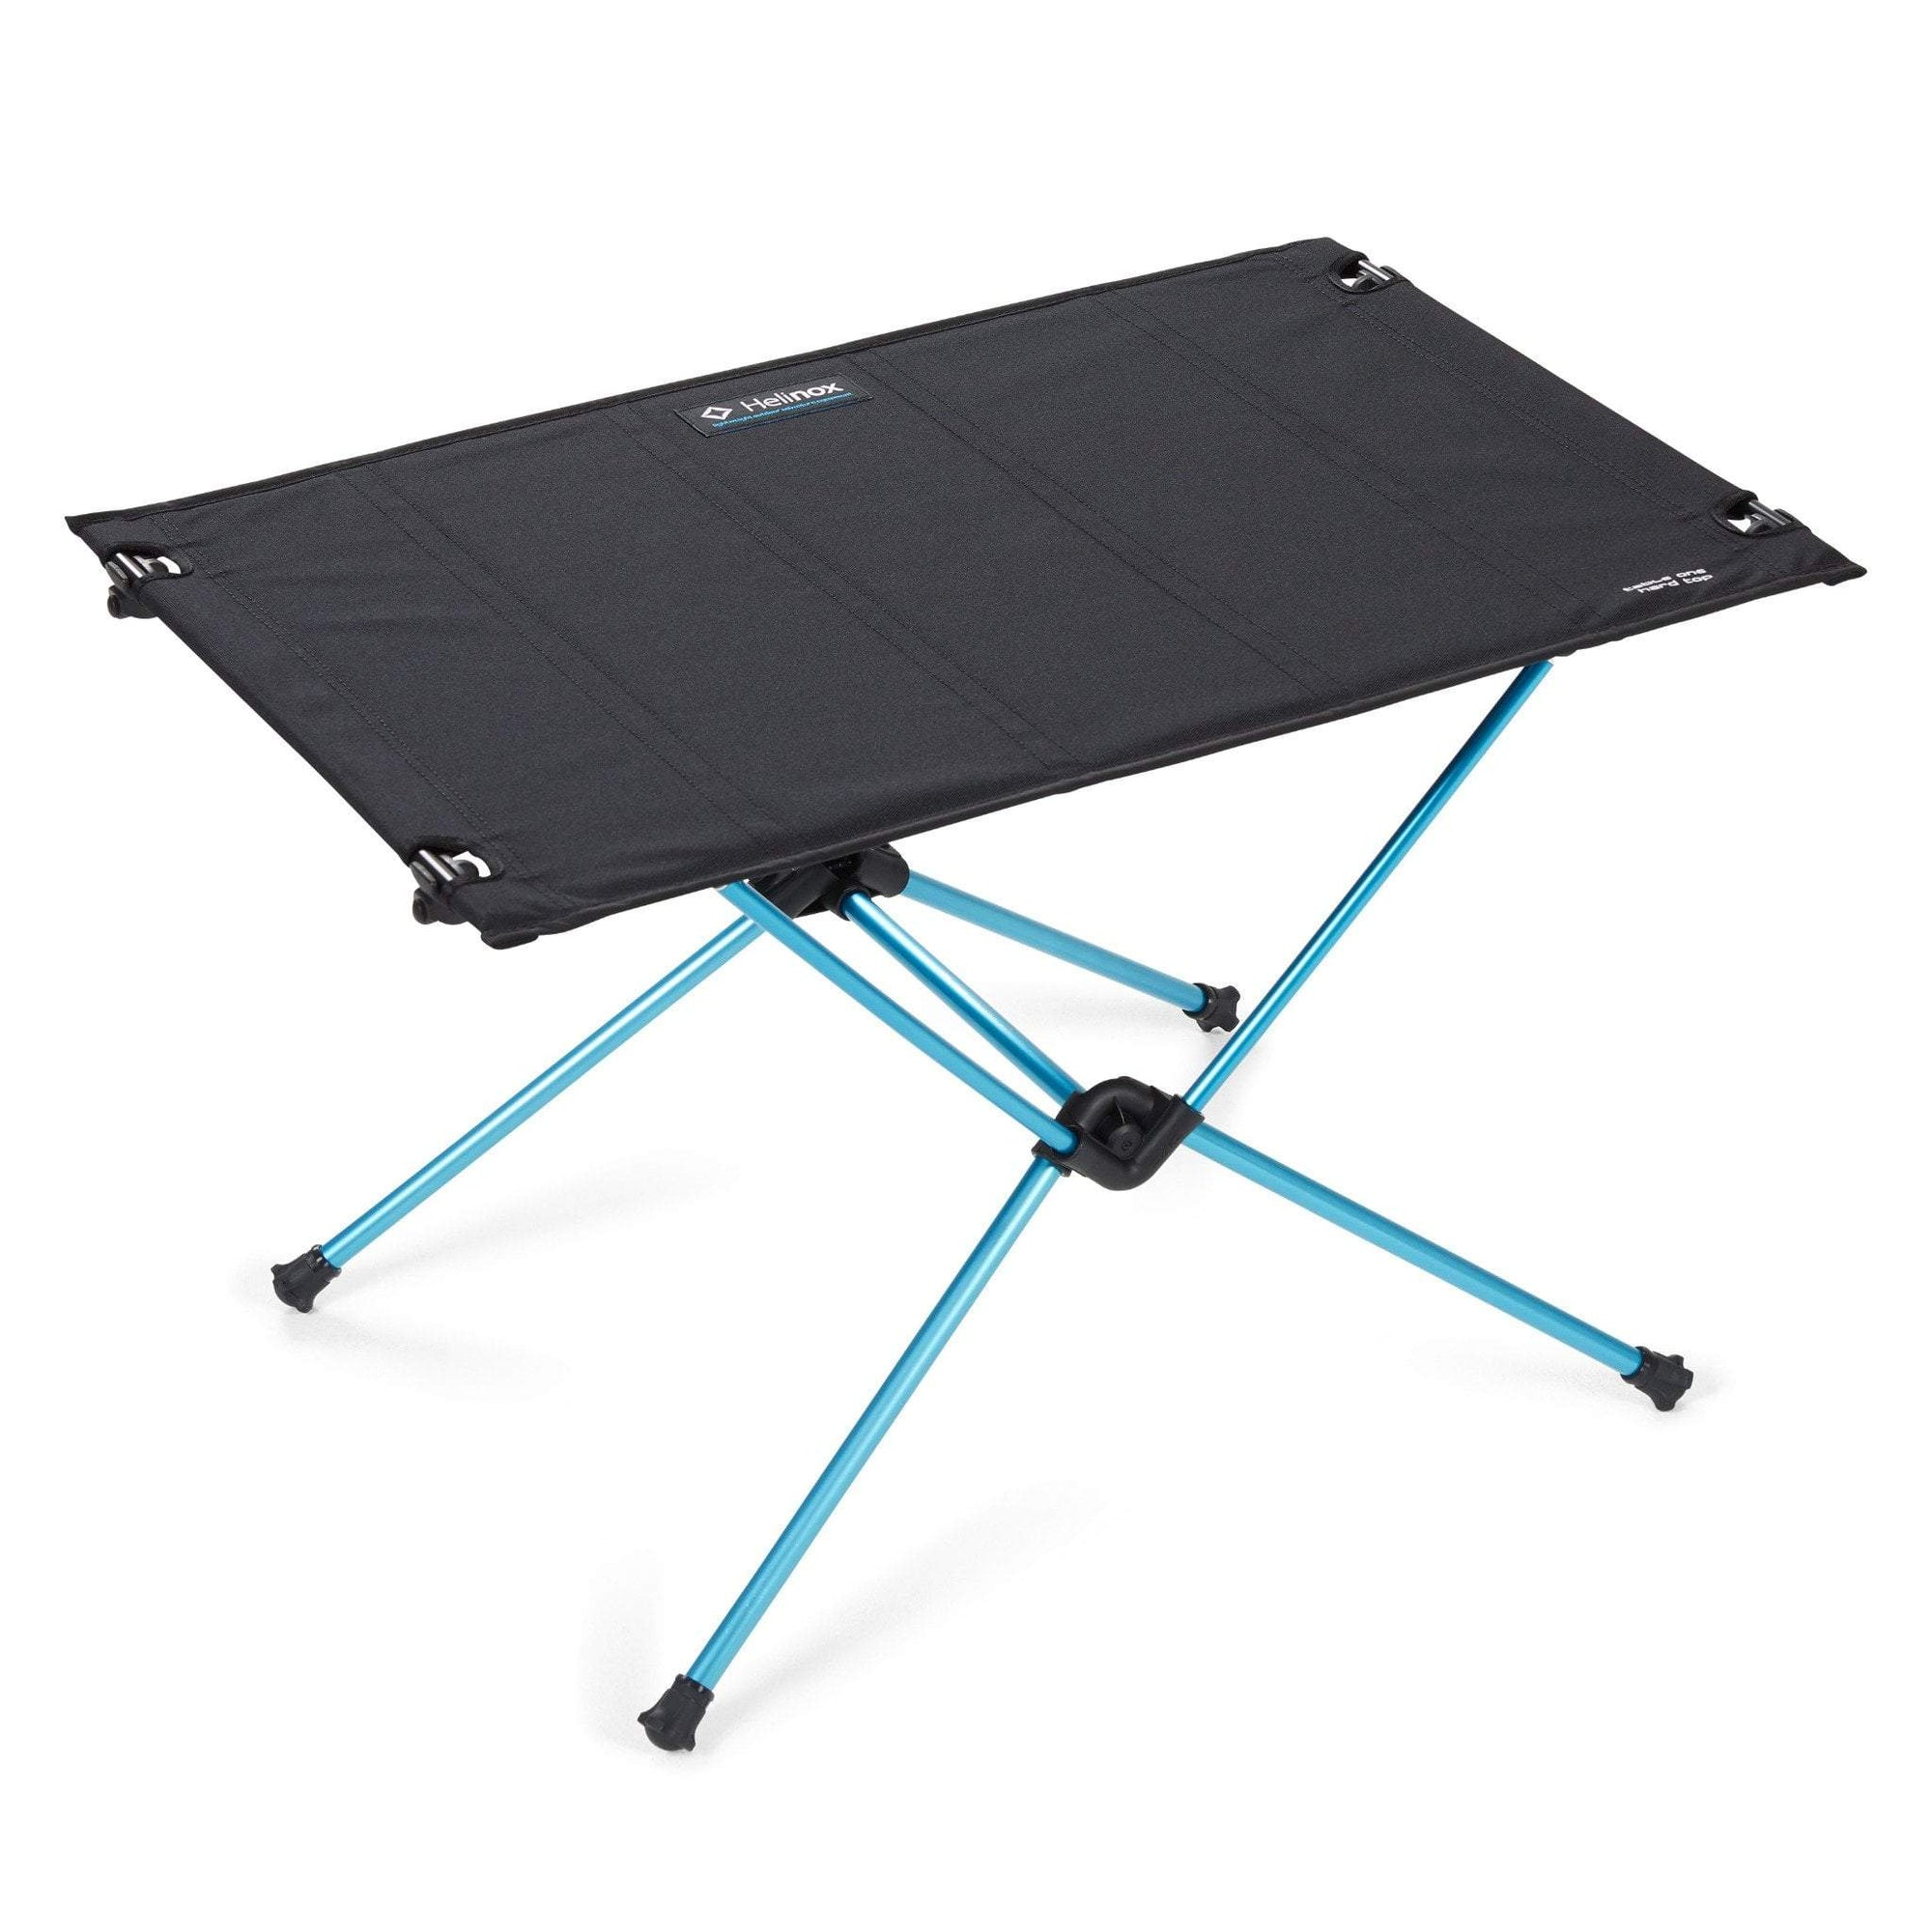 Helinox Helinox Table One Hard Top Camp Table Tables